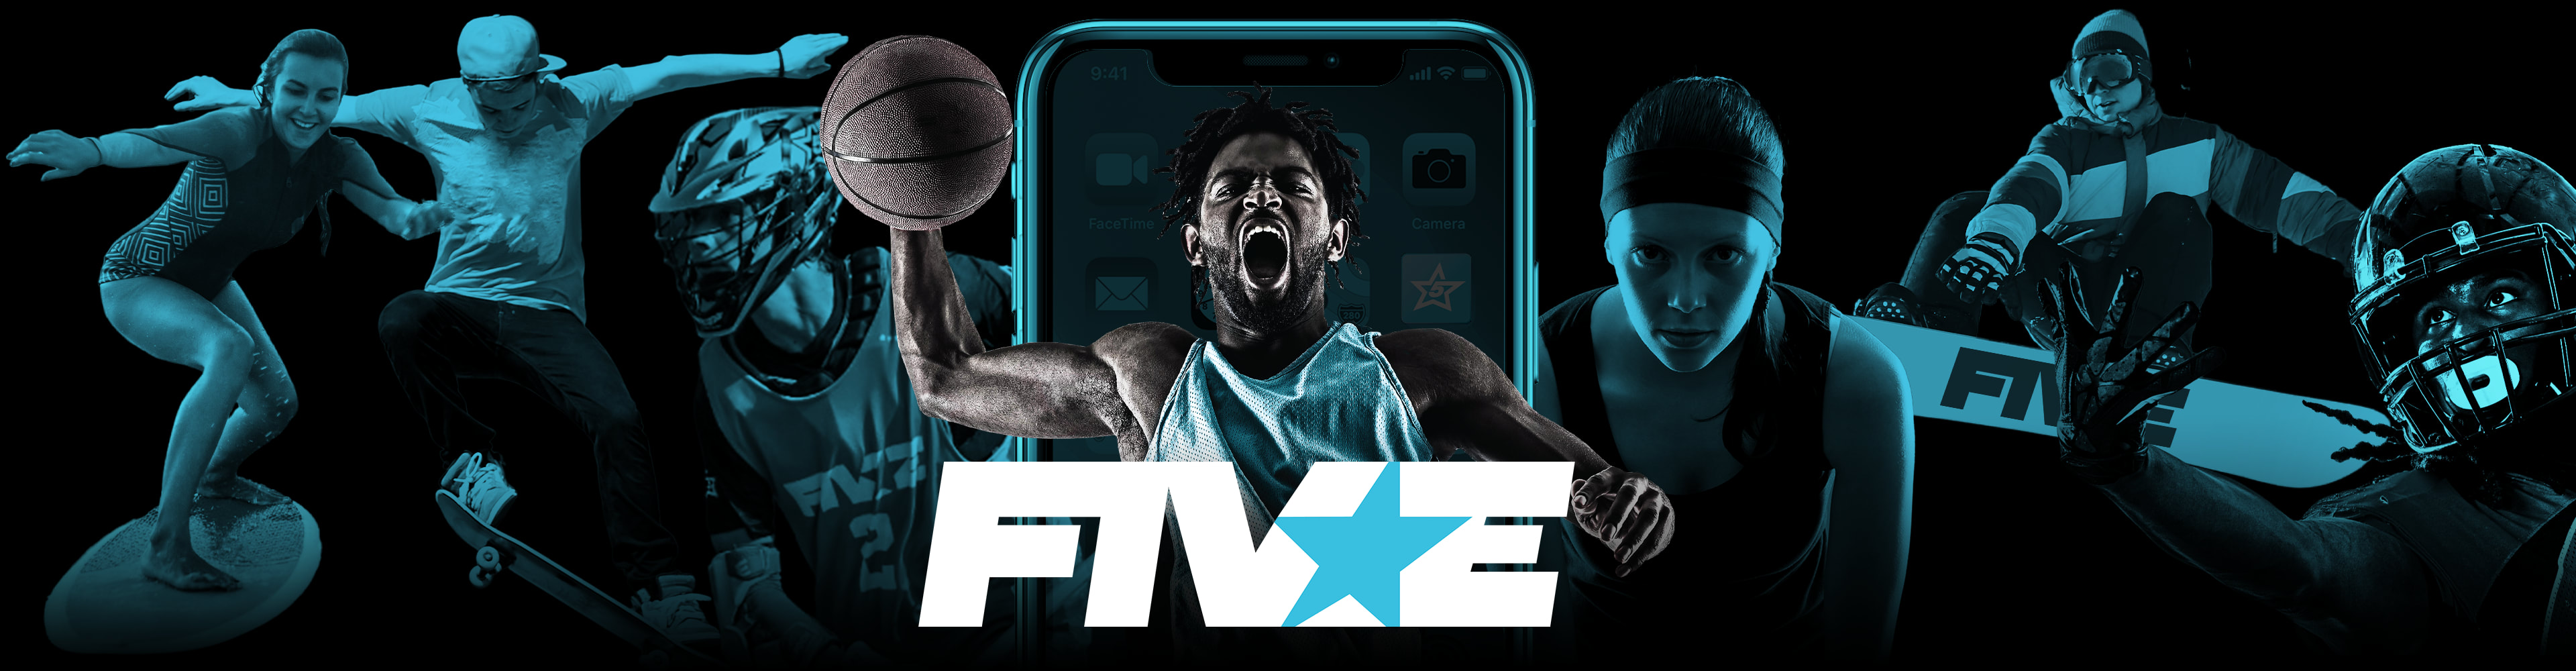 Fivestar News - Sports Highlights, Headlines, and Podcasts